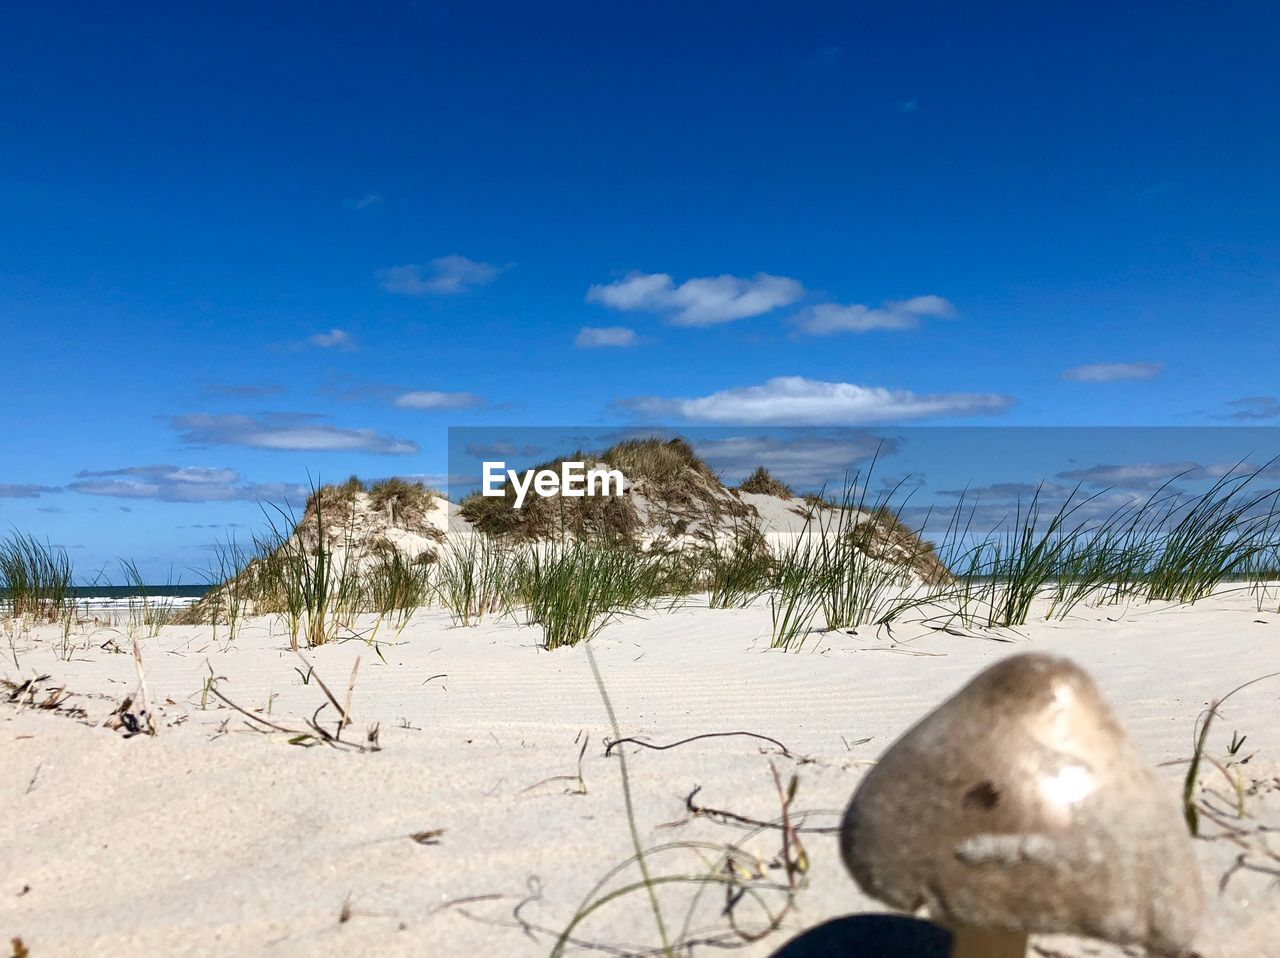 sky, land, nature, scenics - nature, cloud - sky, tranquility, beauty in nature, plant, day, sunlight, no people, tranquil scene, sand, snow, beach, landscape, field, environment, blue, outdoors, marram grass, snowcapped mountain